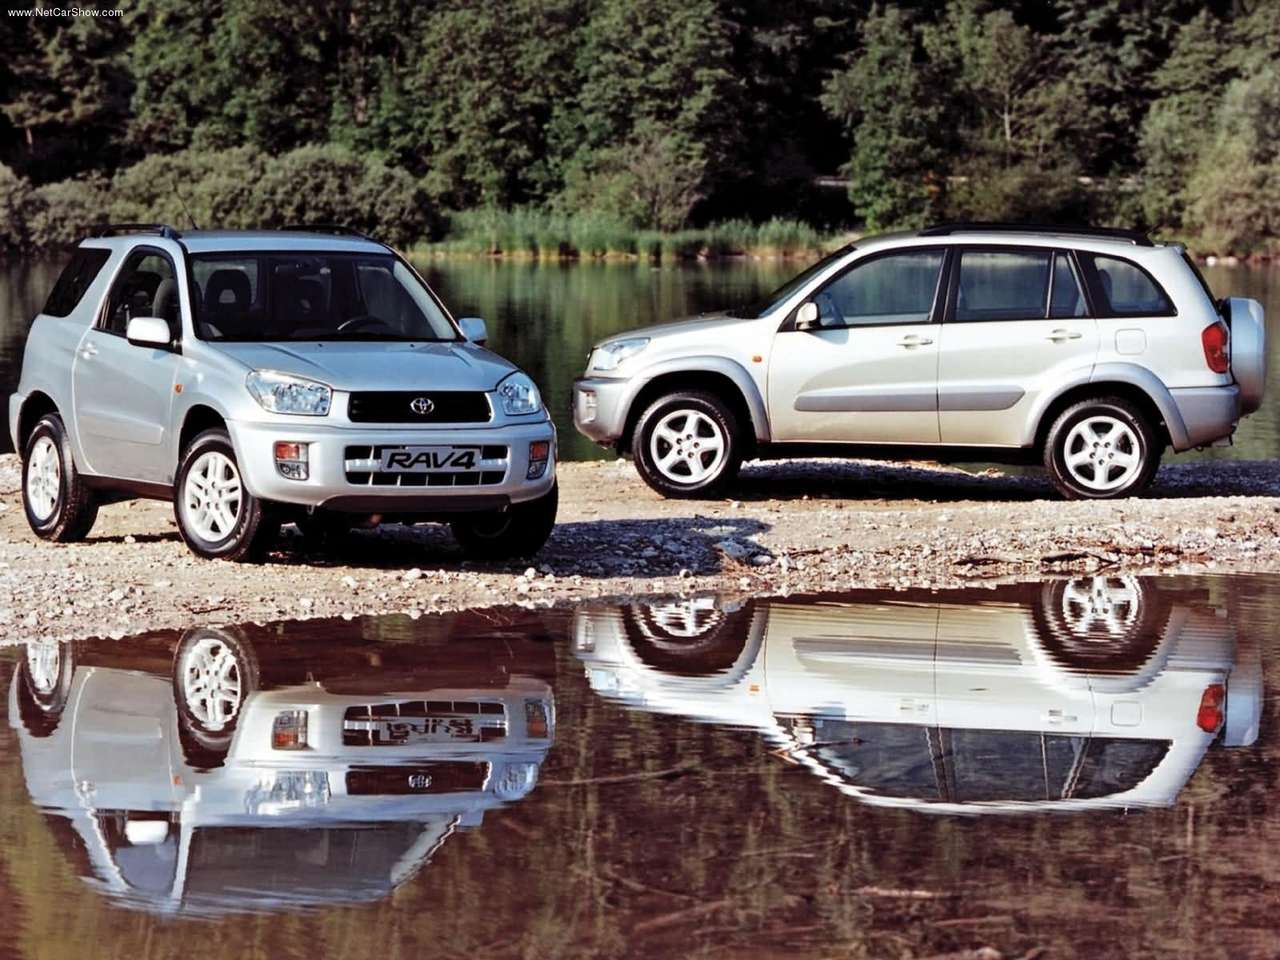 Toyota Rav4, Toyota, Rav4, motoring, automotive, not2grand, www.not2grand.co.uk, Adrian Flux, 4x4, off-roader, all-wheel drive, Rav4 buying guide, car, cars, classic car, retro car, ebay, ebay motora, autotrader, featured